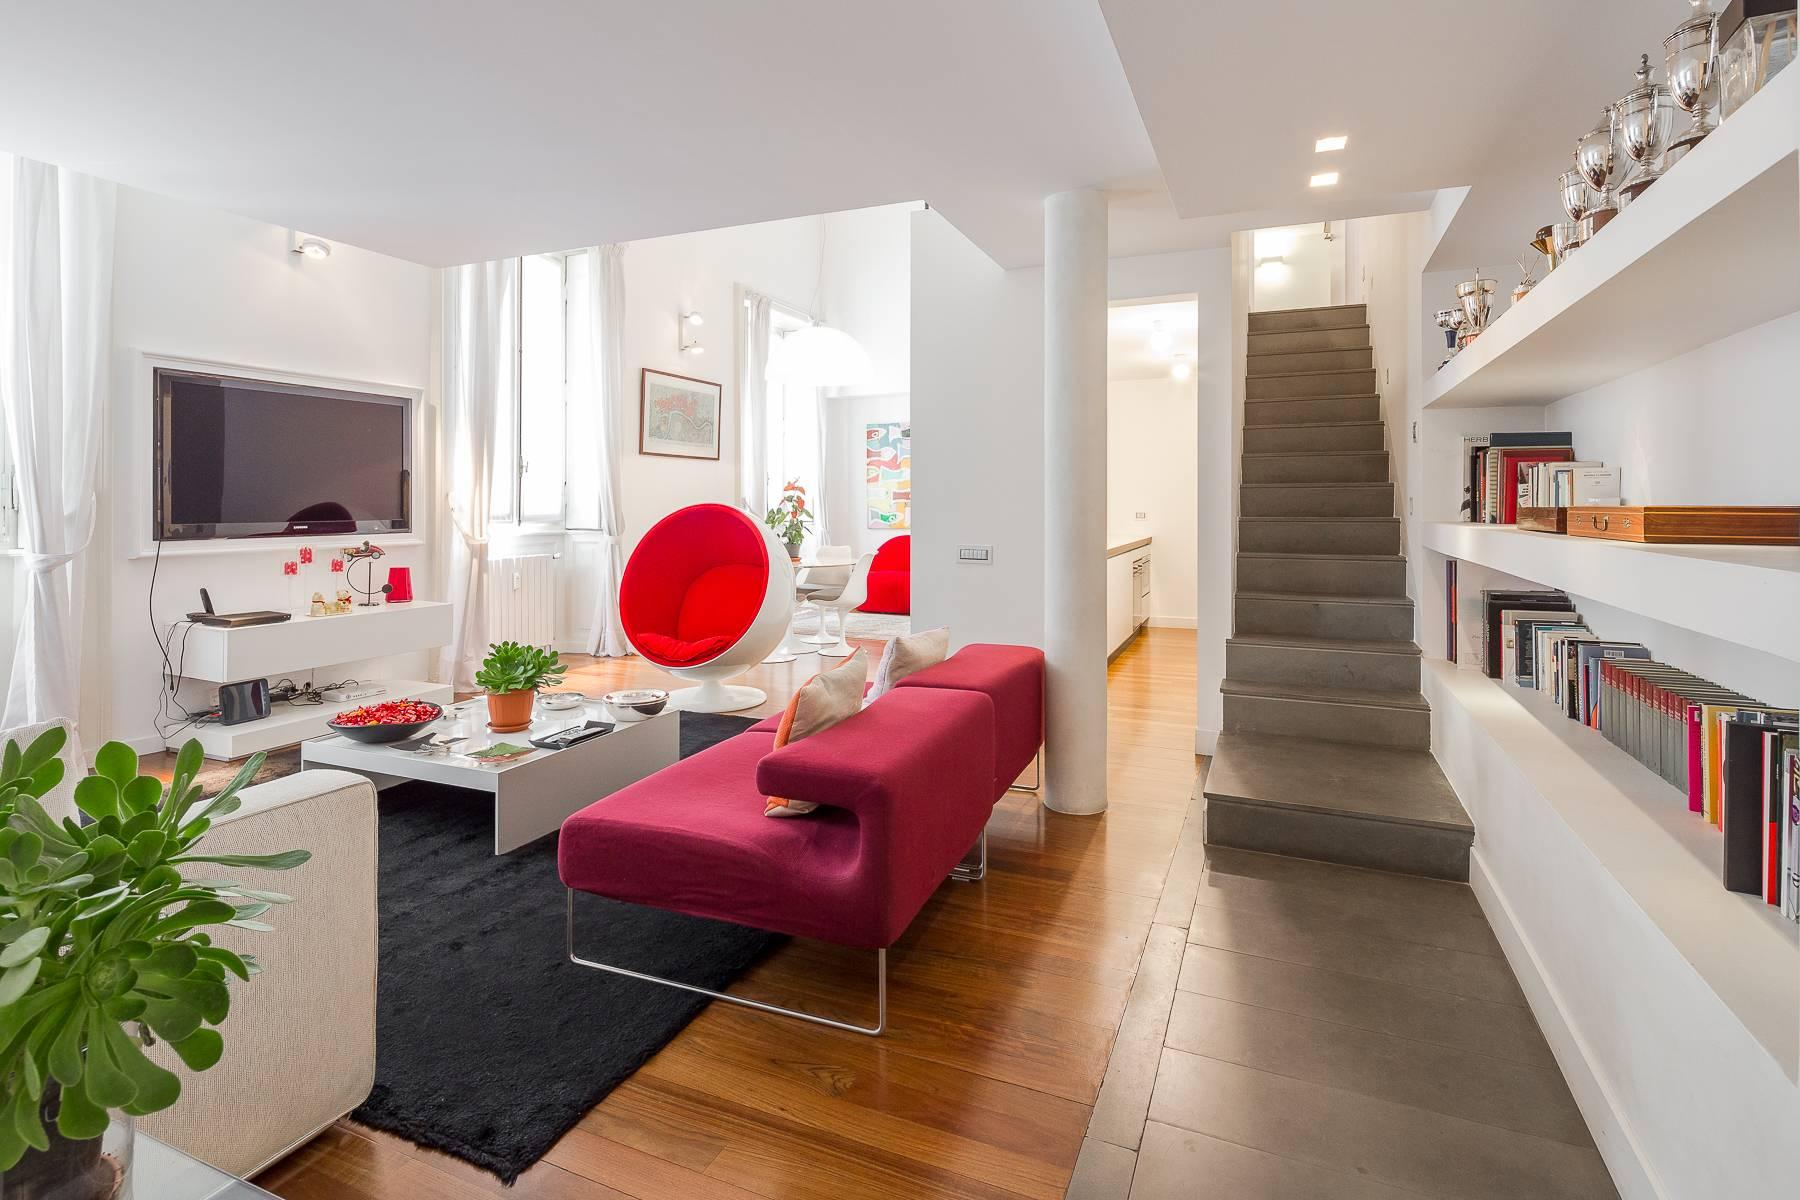 Apartment / loft in Brera district, Via Montebello / De Marchi - 4